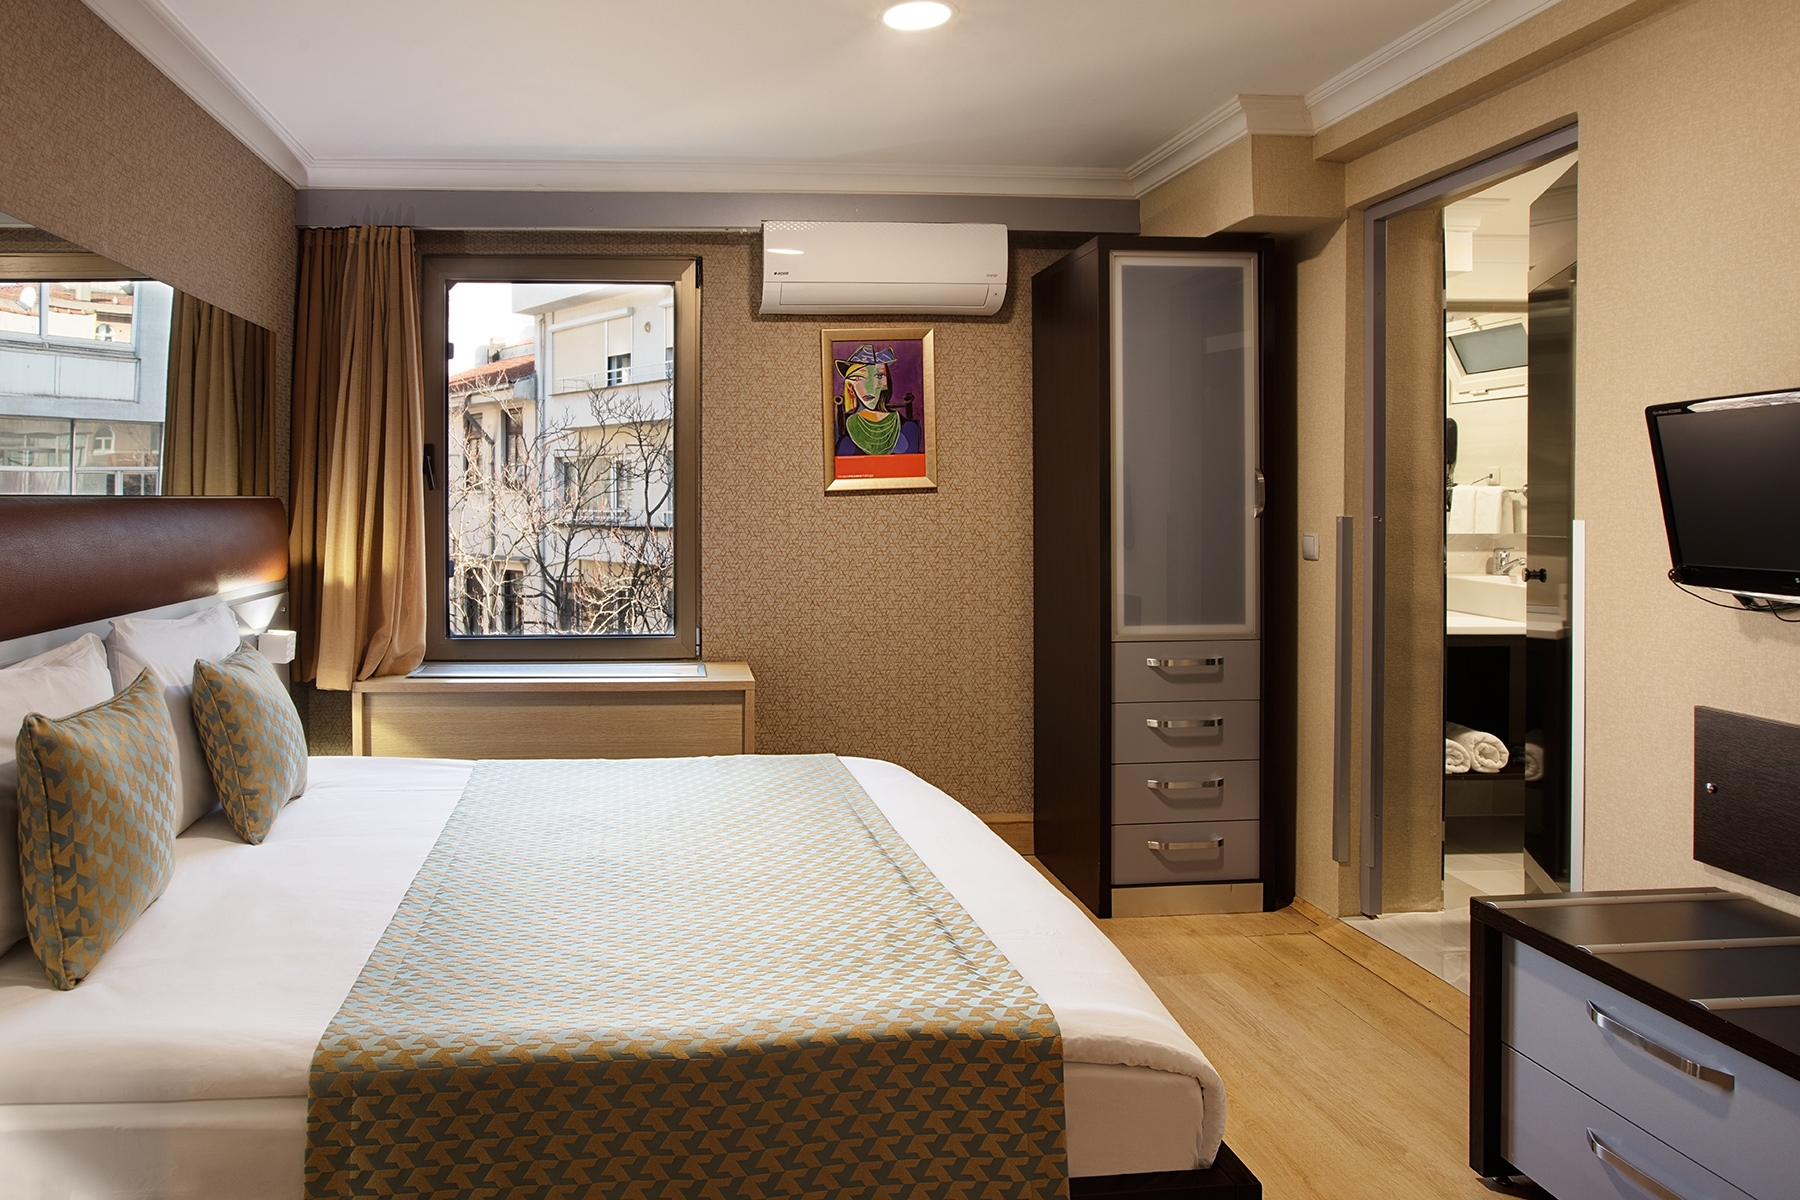 Bed at Gallery Residence, Sisli, Istanbul